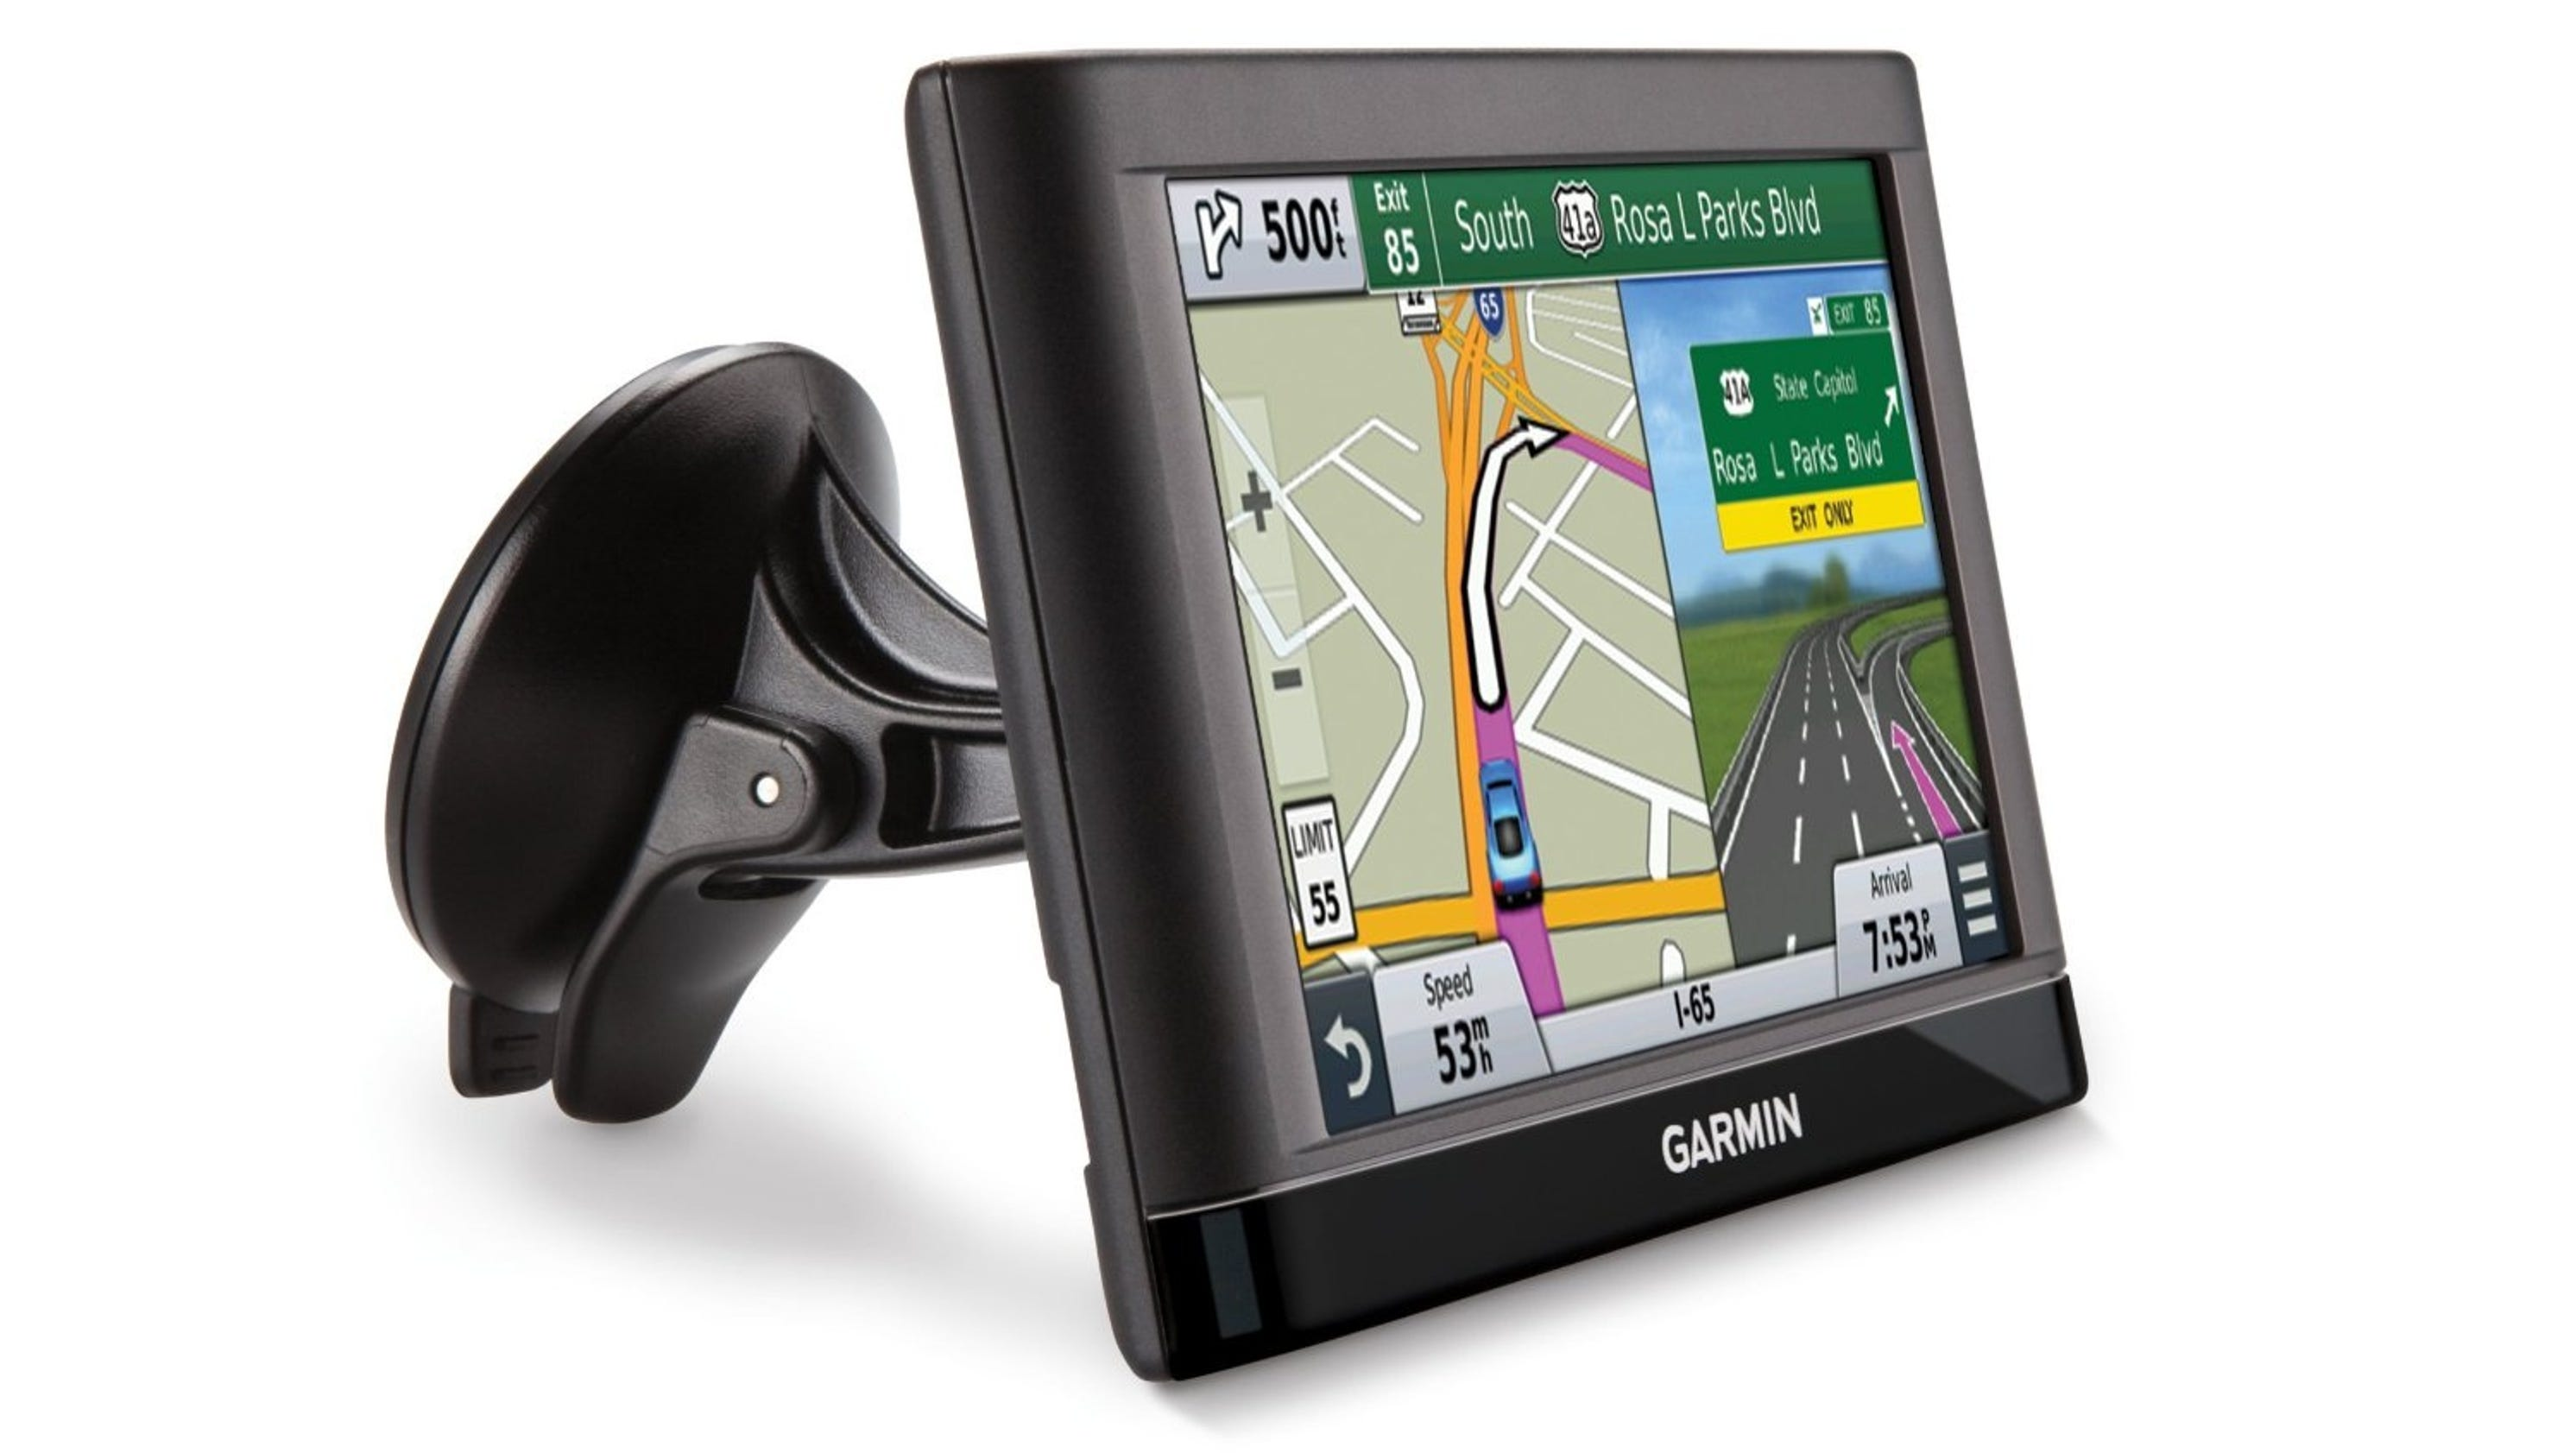 how to get free vms gps update